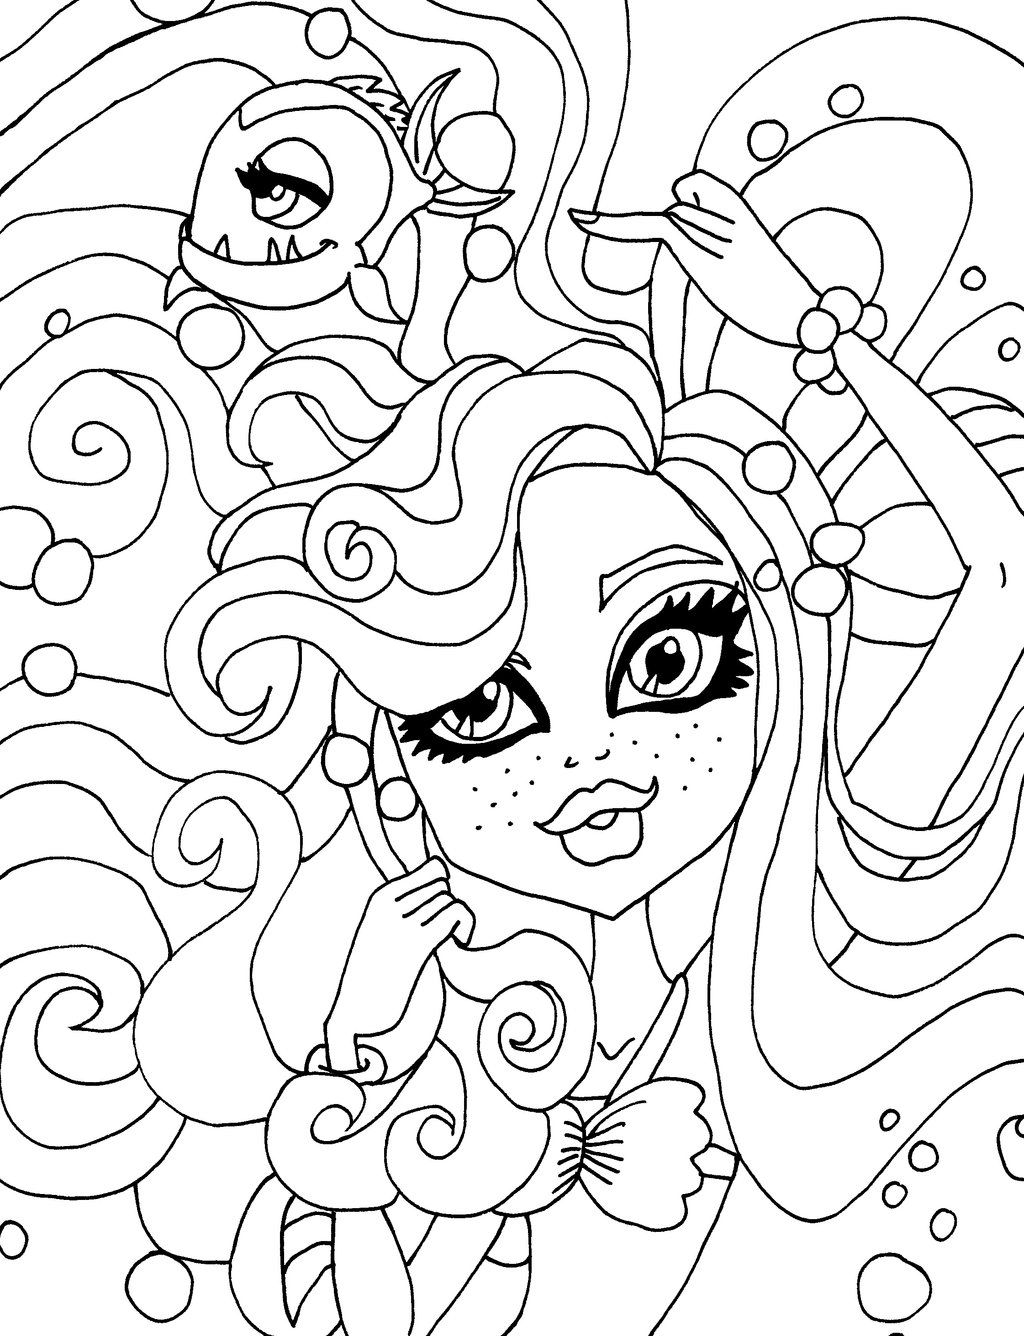 lagoona blue wishes coloring sheet | Coloring pages | Pinterest